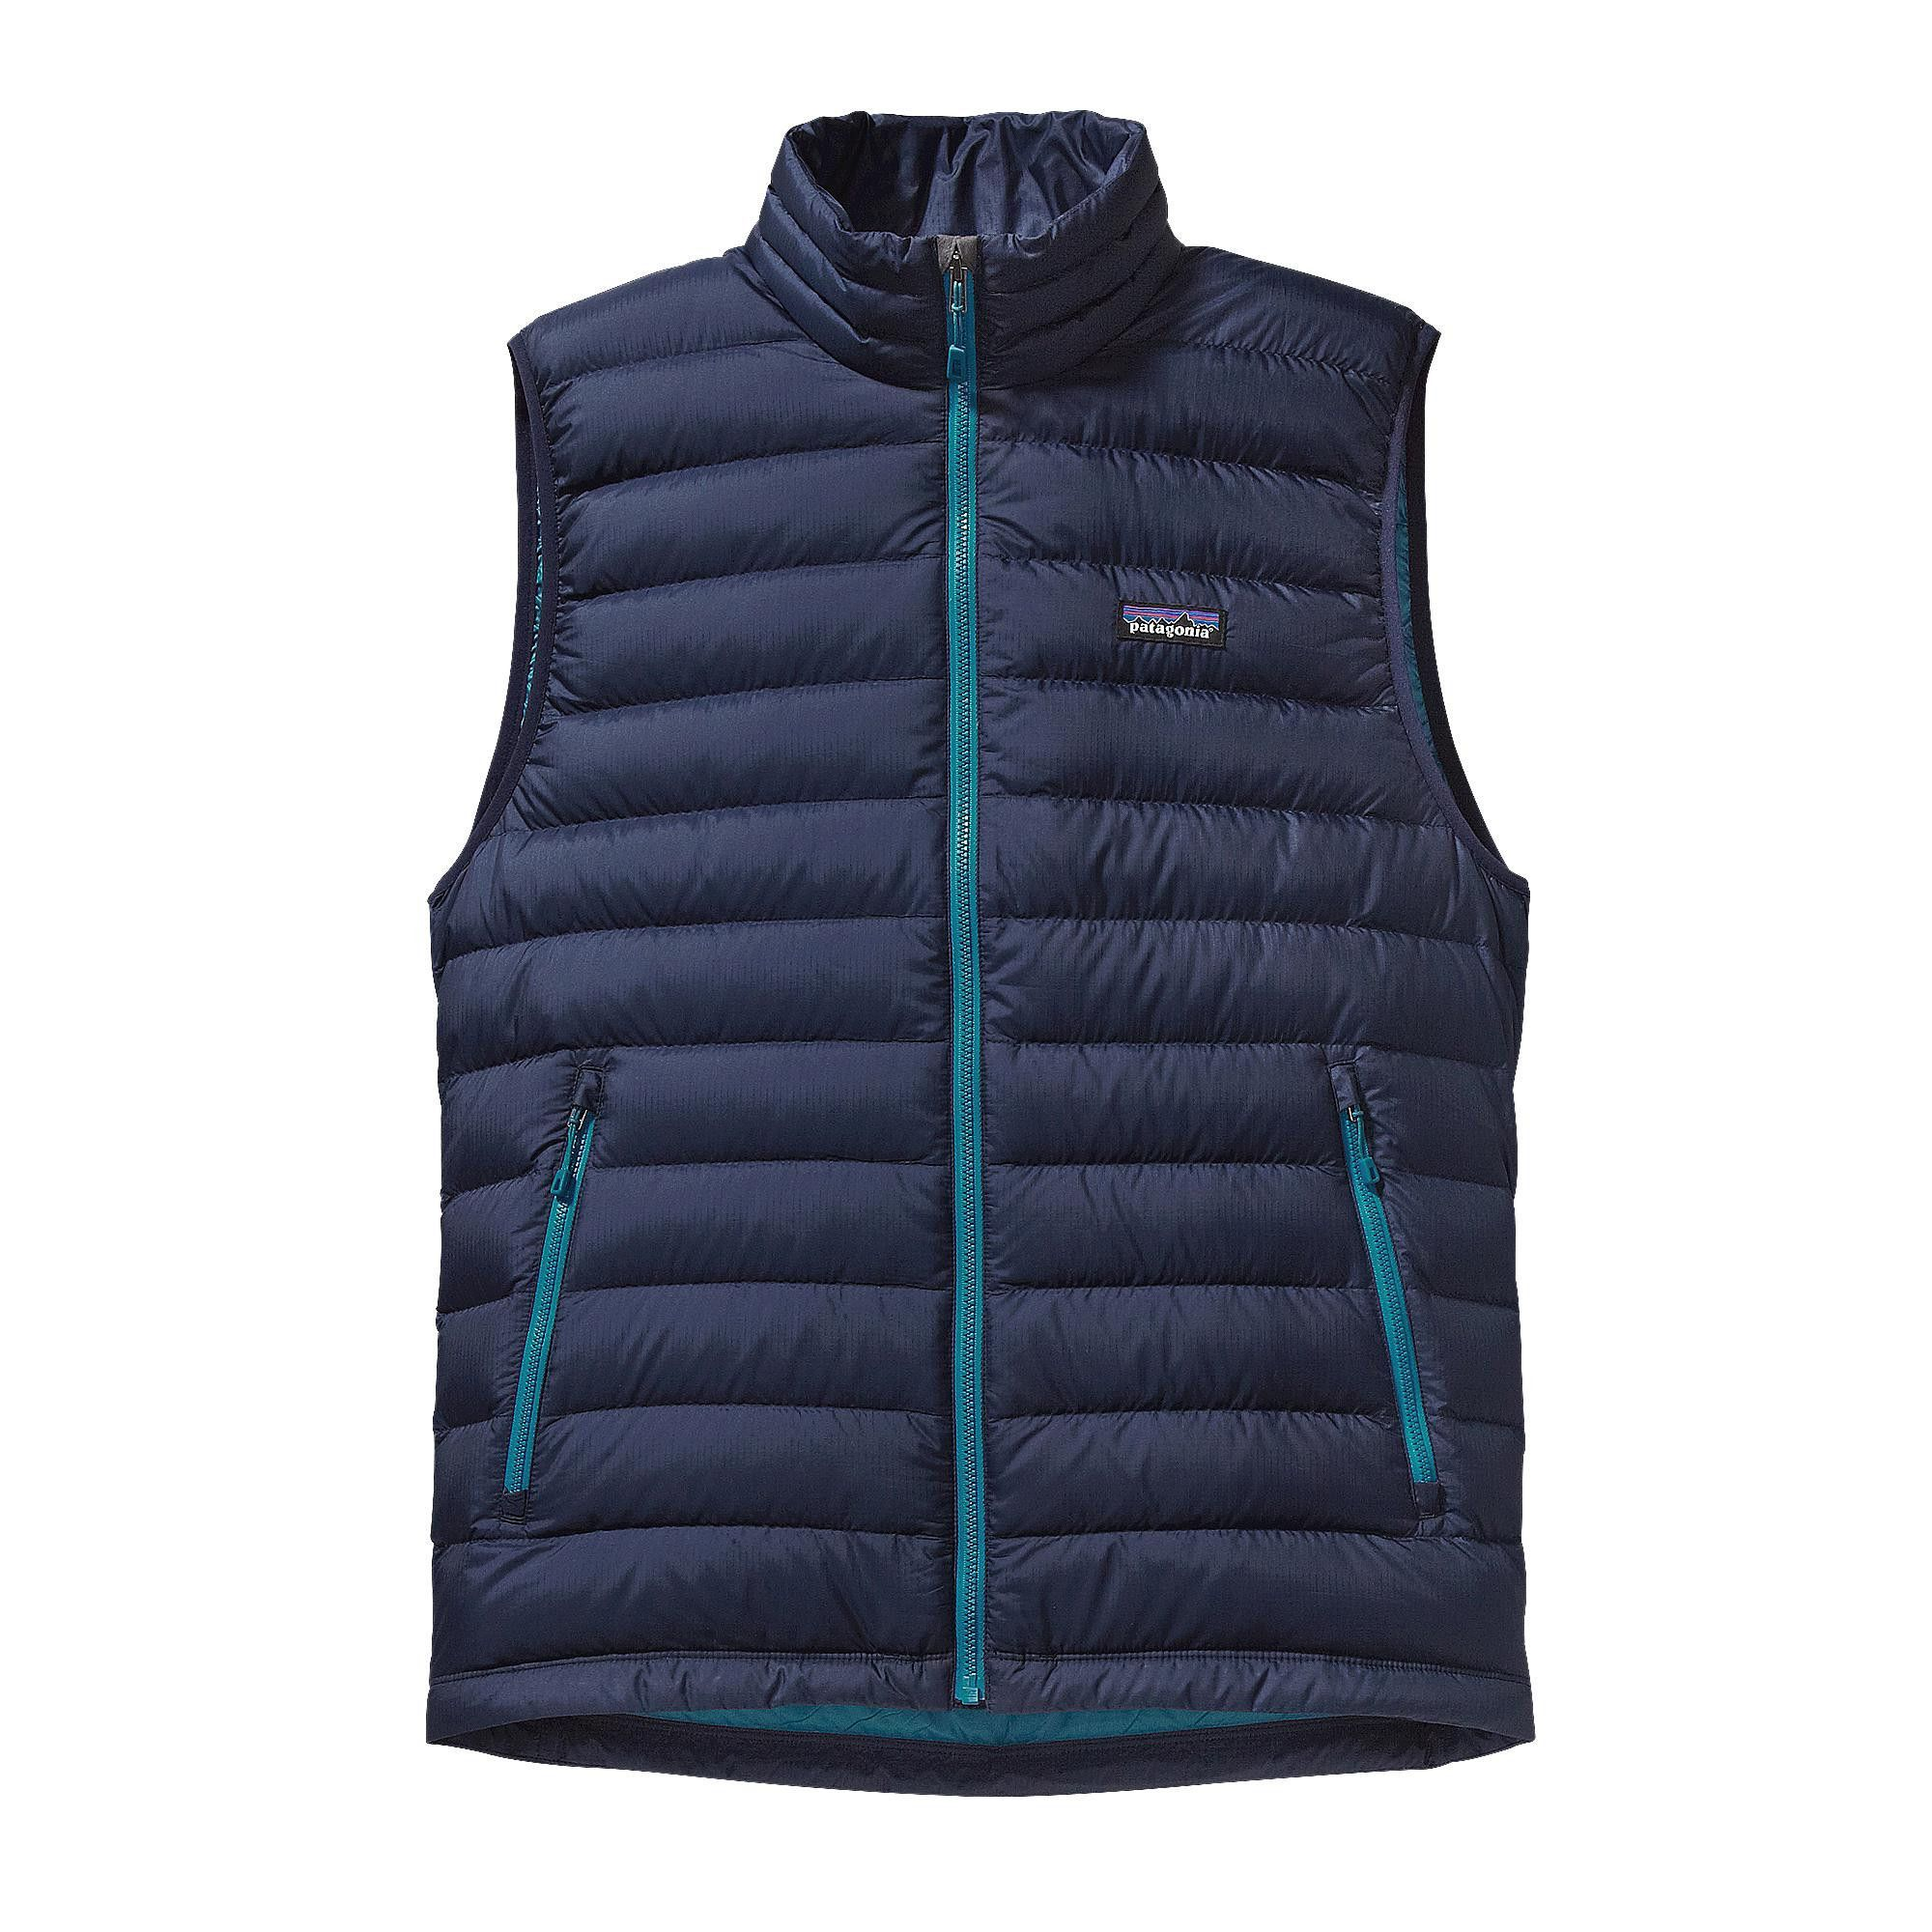 Patagonia Men's Down Sweater Vest in 2020 | Sweater vest